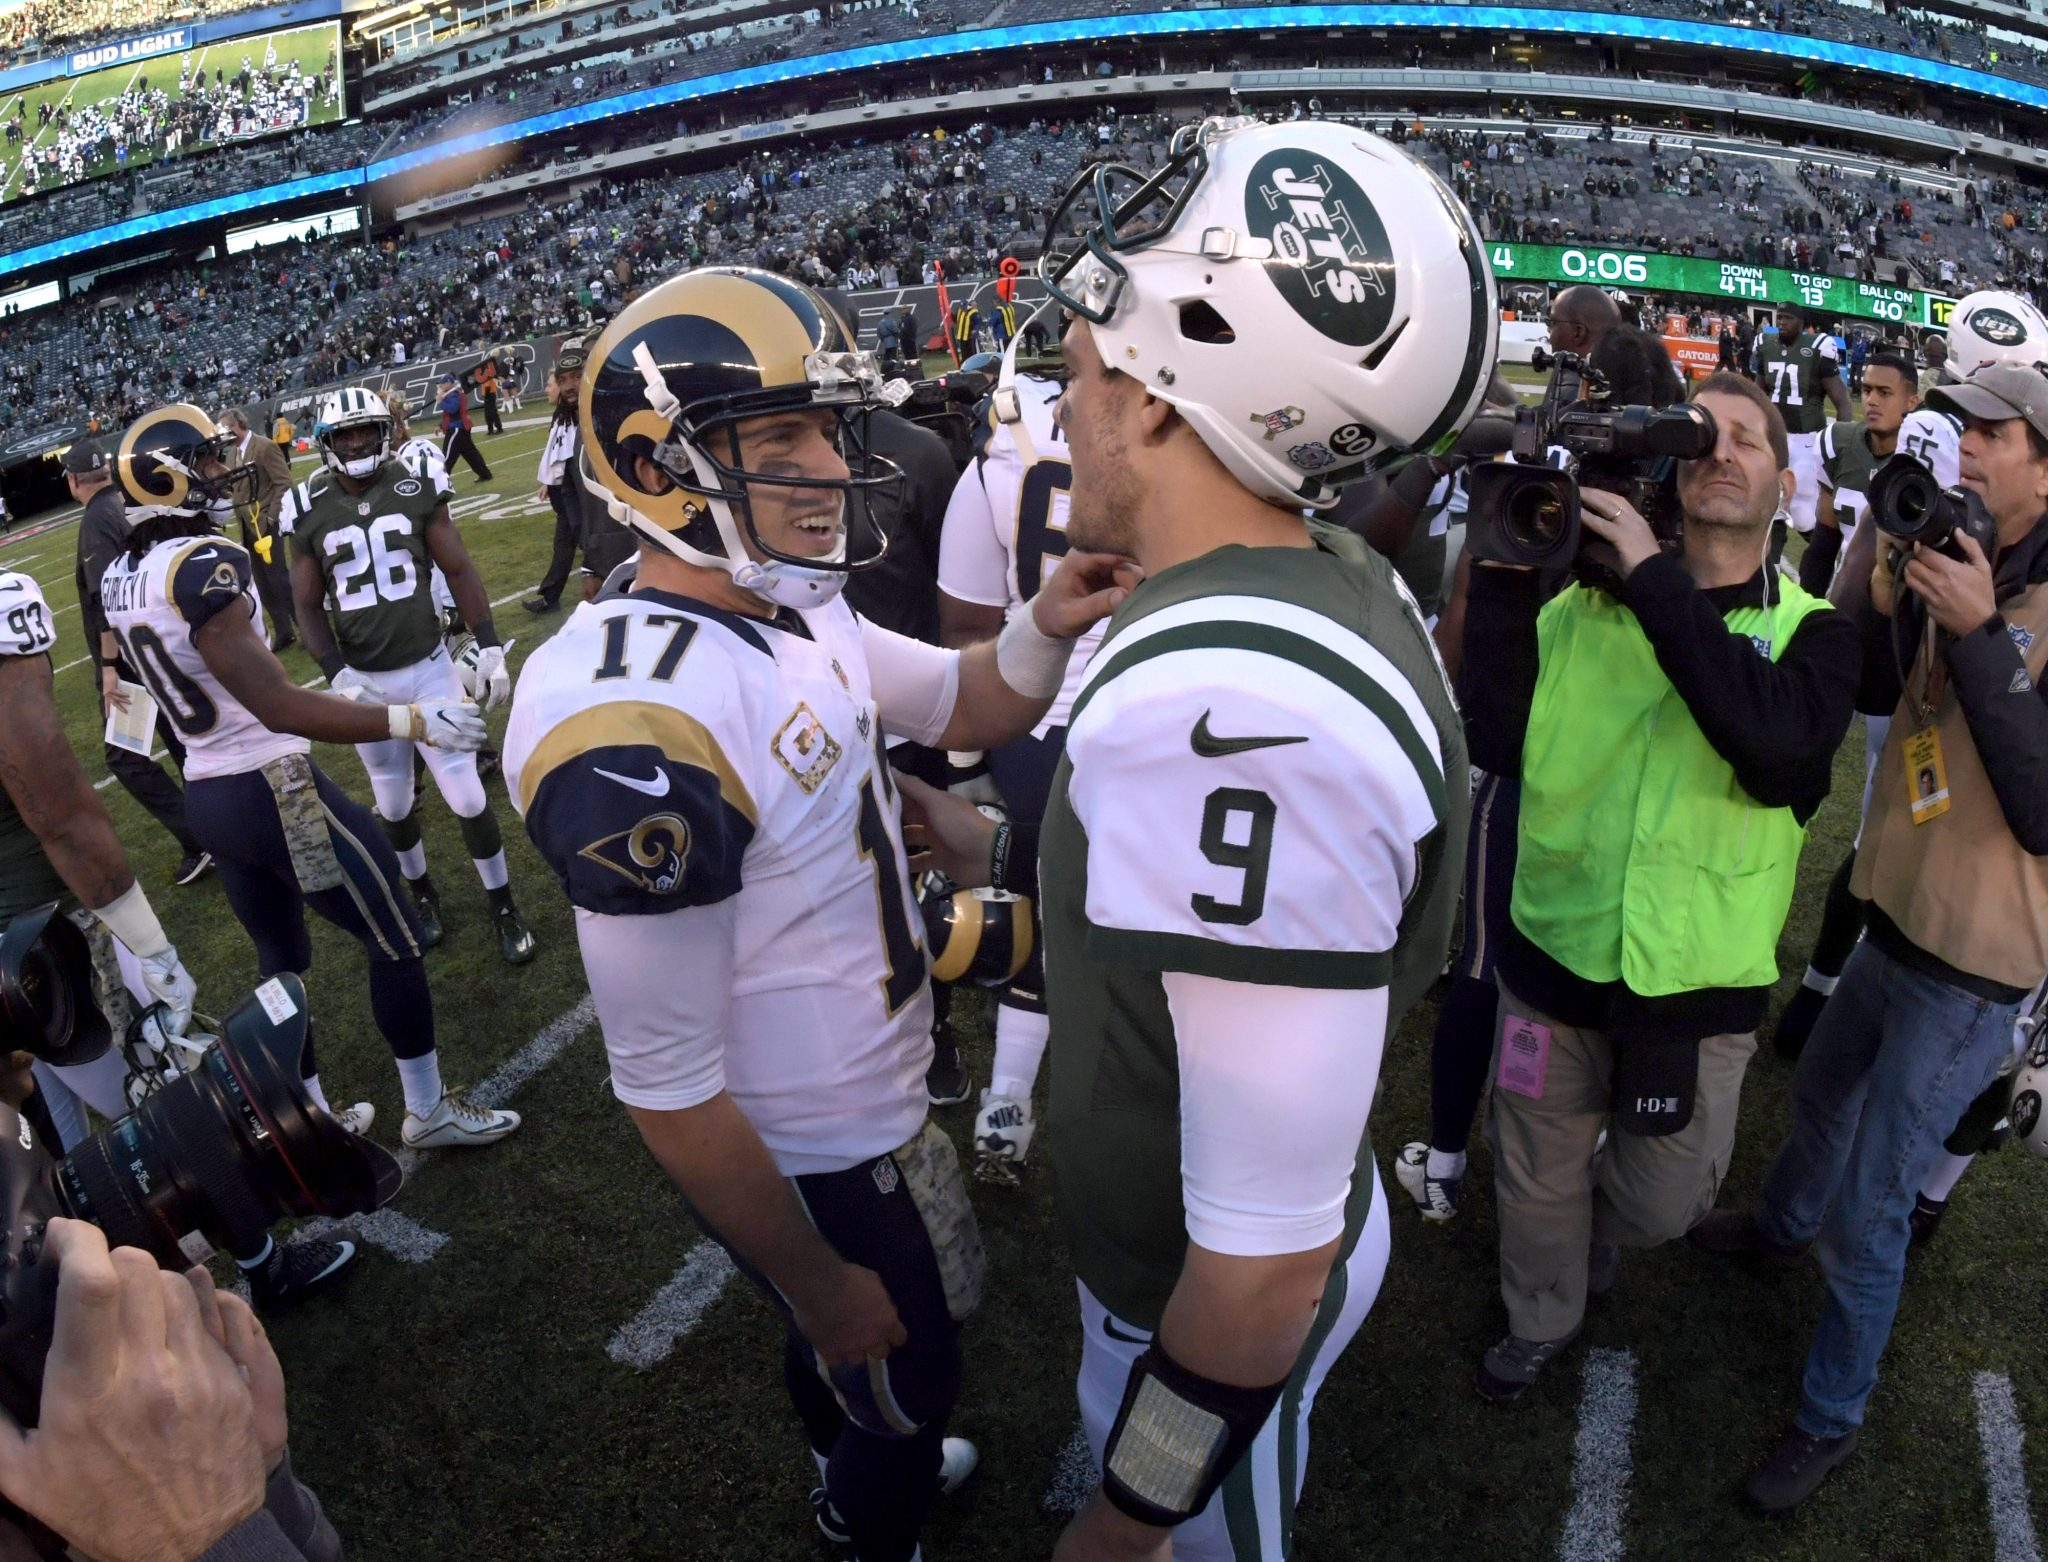 The New York Jets must hate Bryce Petty